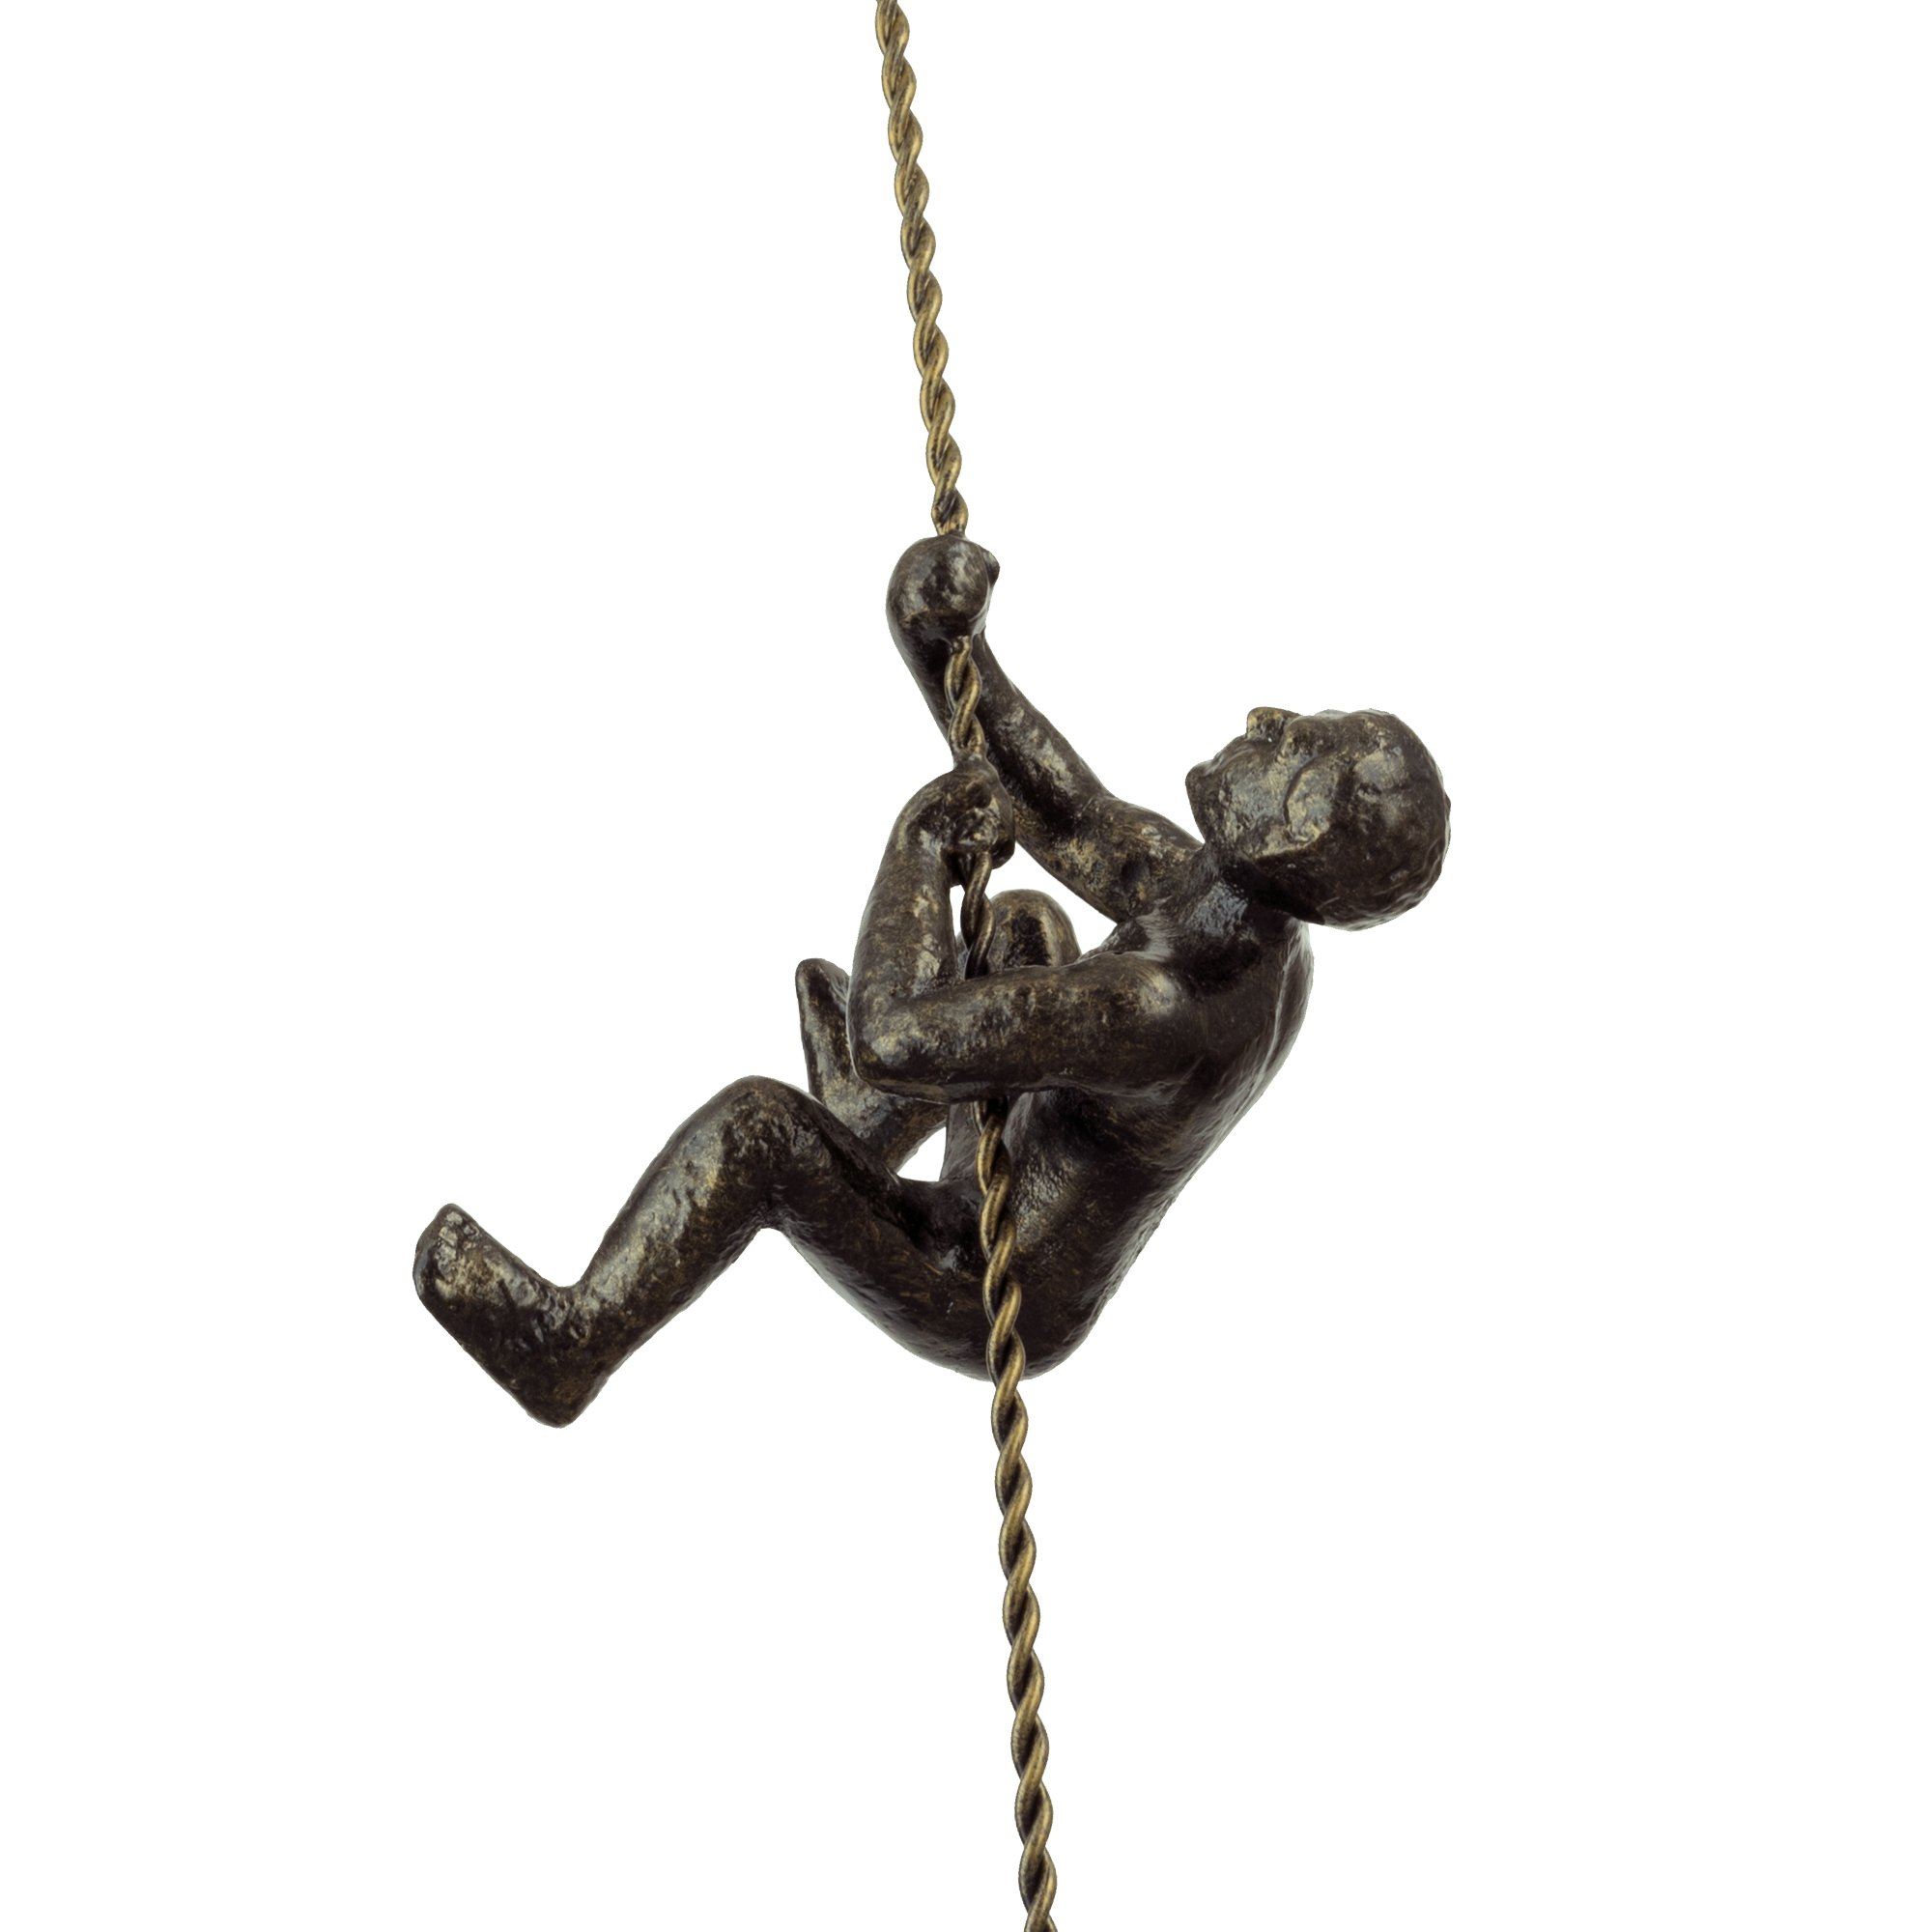 Kira Home Titan 6'' Climbing Man Metal Wall Sculpture, Hand-Painted Charcoal Gold Finish